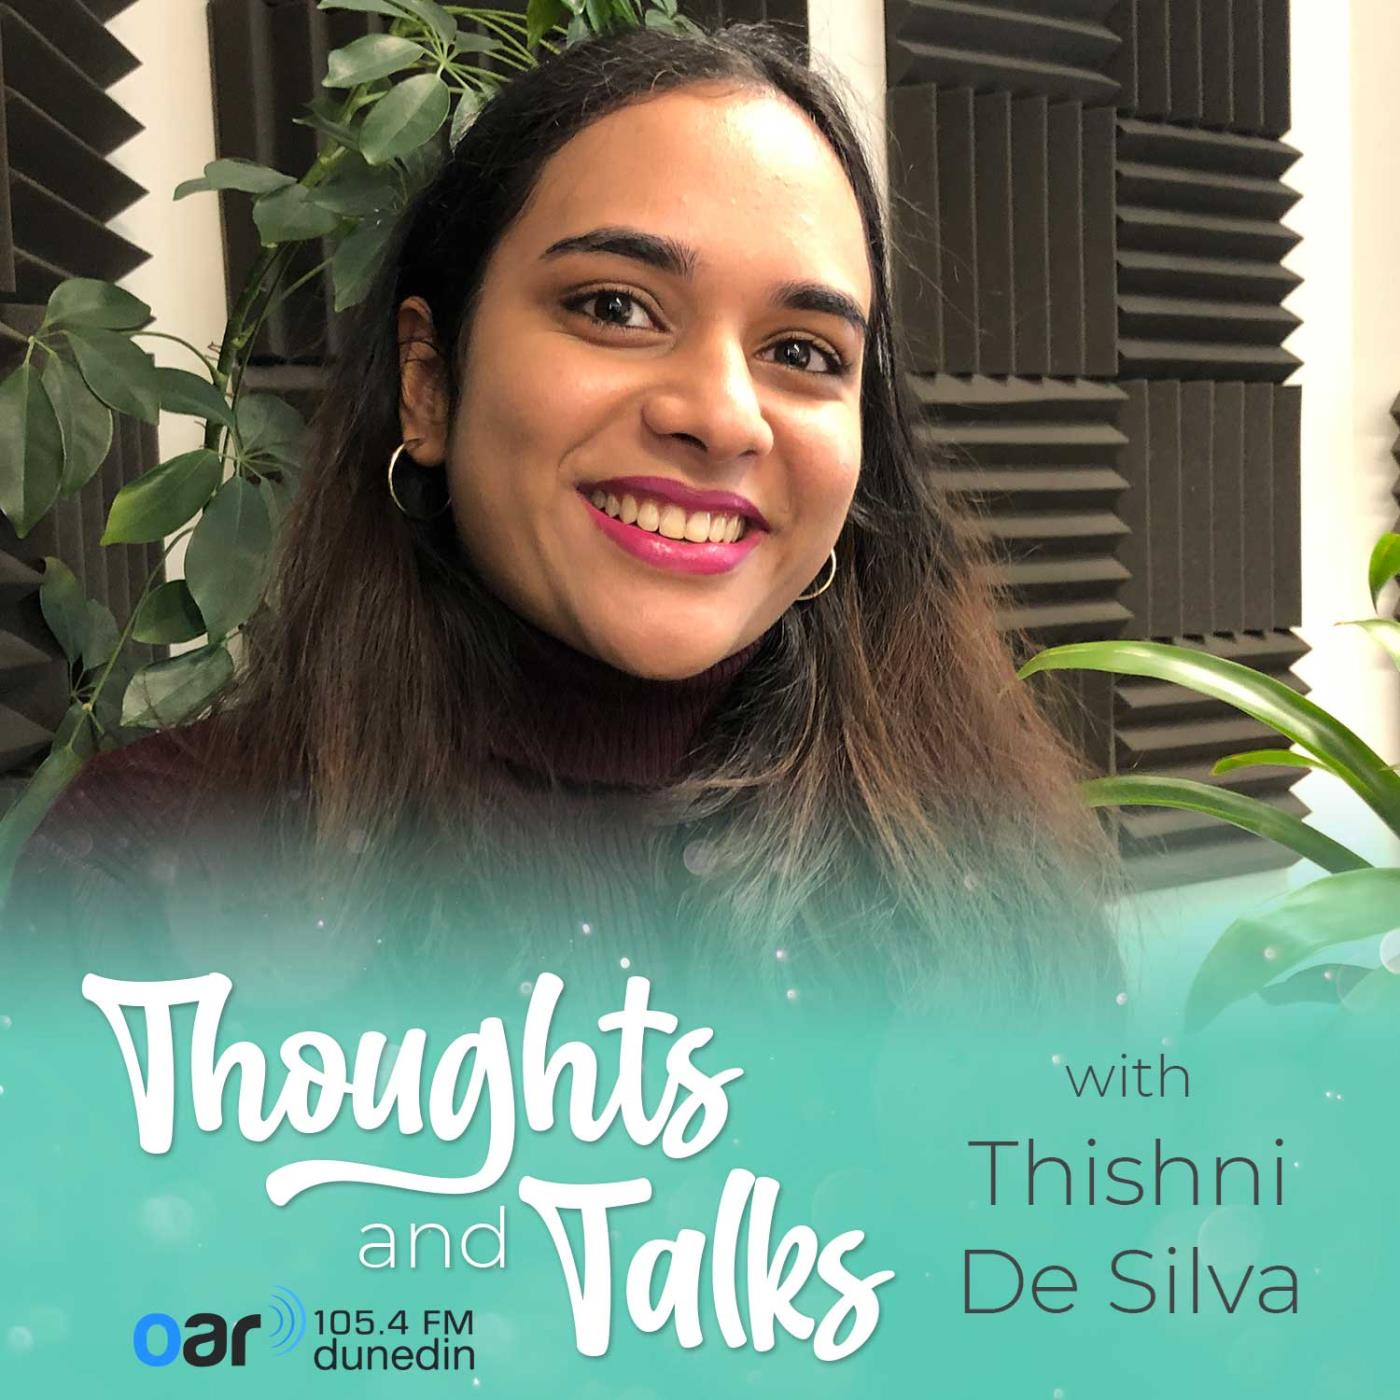 Thoughts and Talks with Thishni